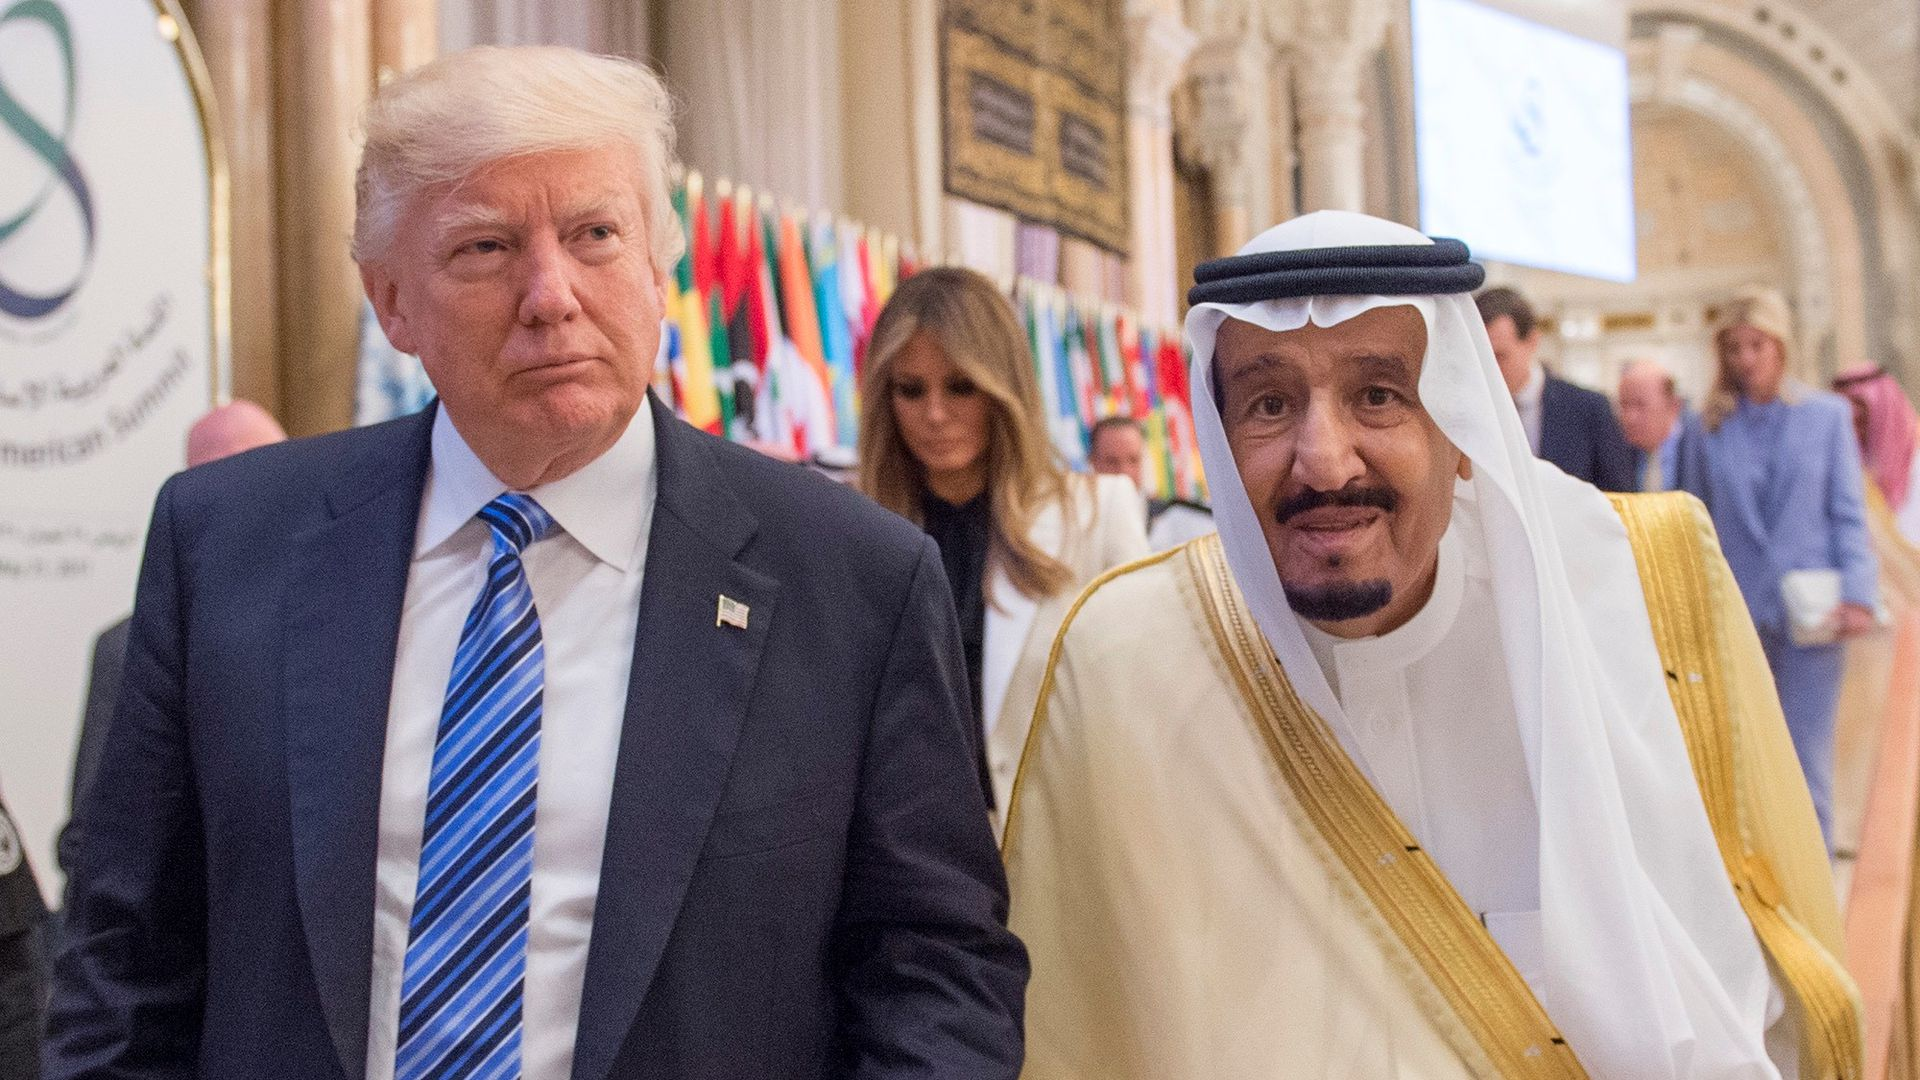 Republicans press Trump on Saudi response after conciliatory King Salman tweet